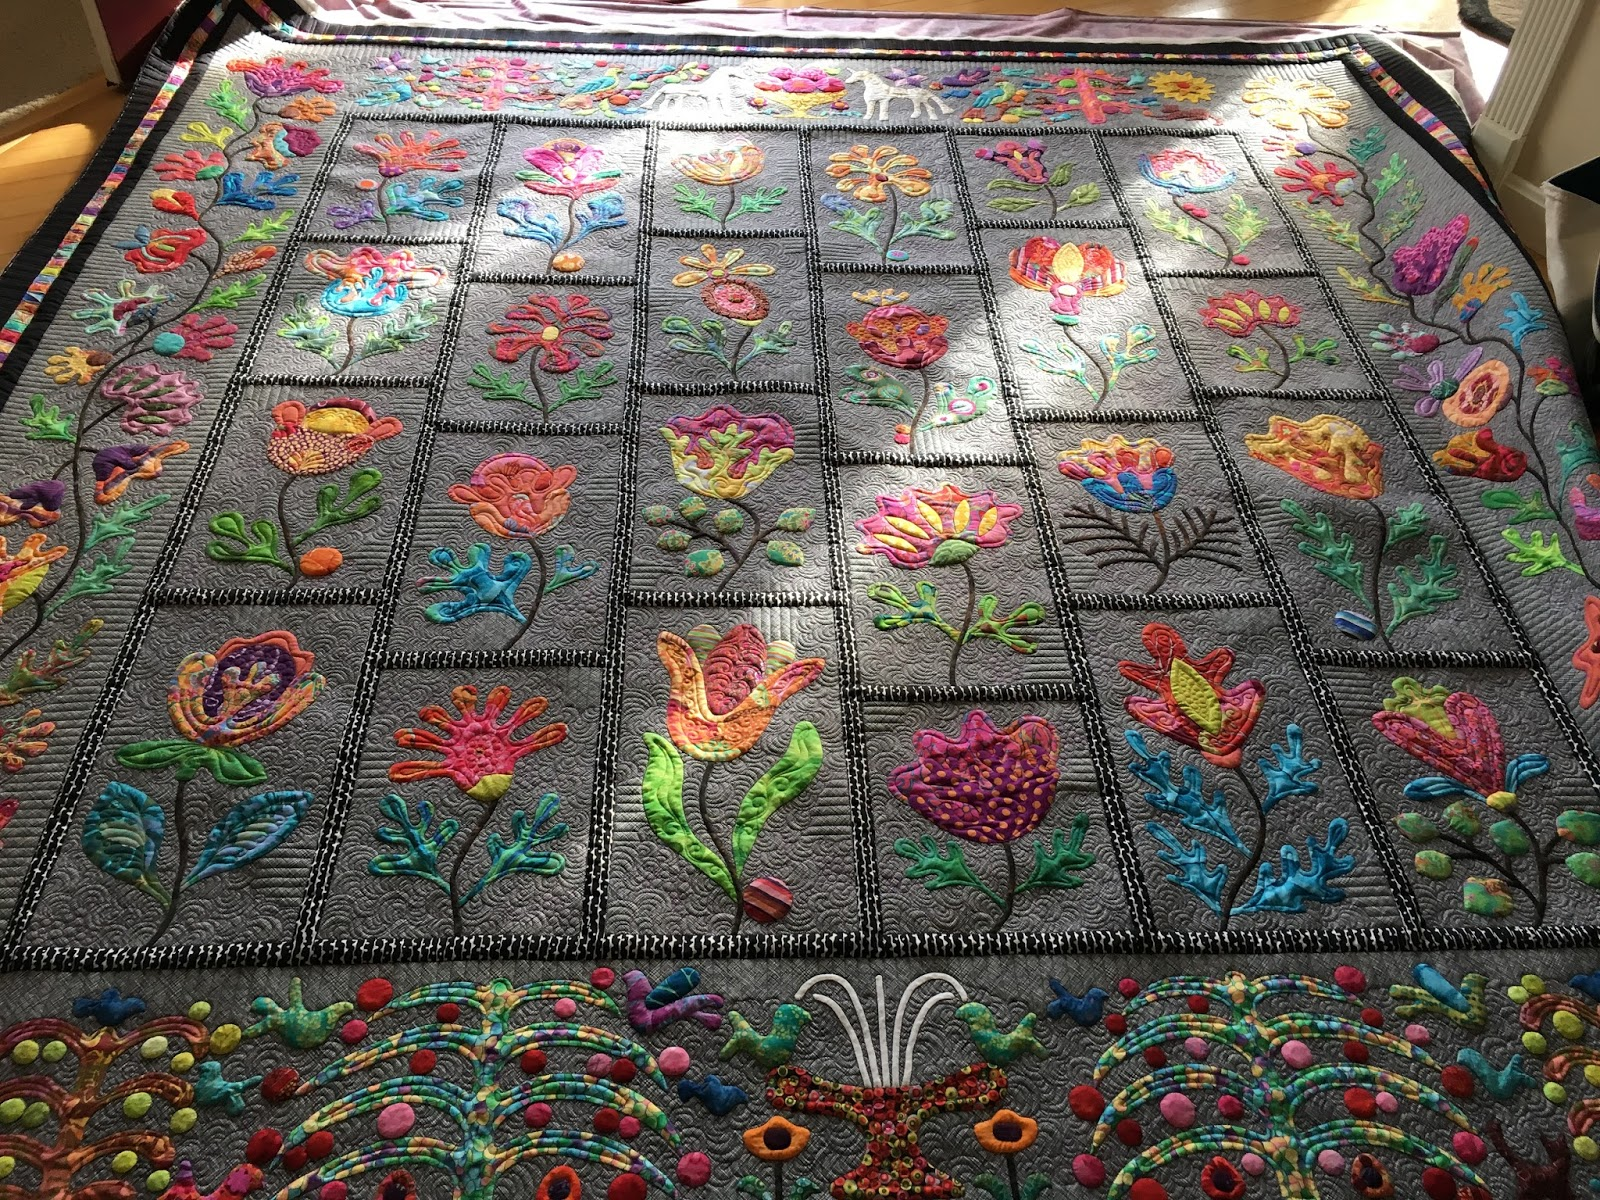 sewing quilt gallery beautiful applique. Black Bedroom Furniture Sets. Home Design Ideas